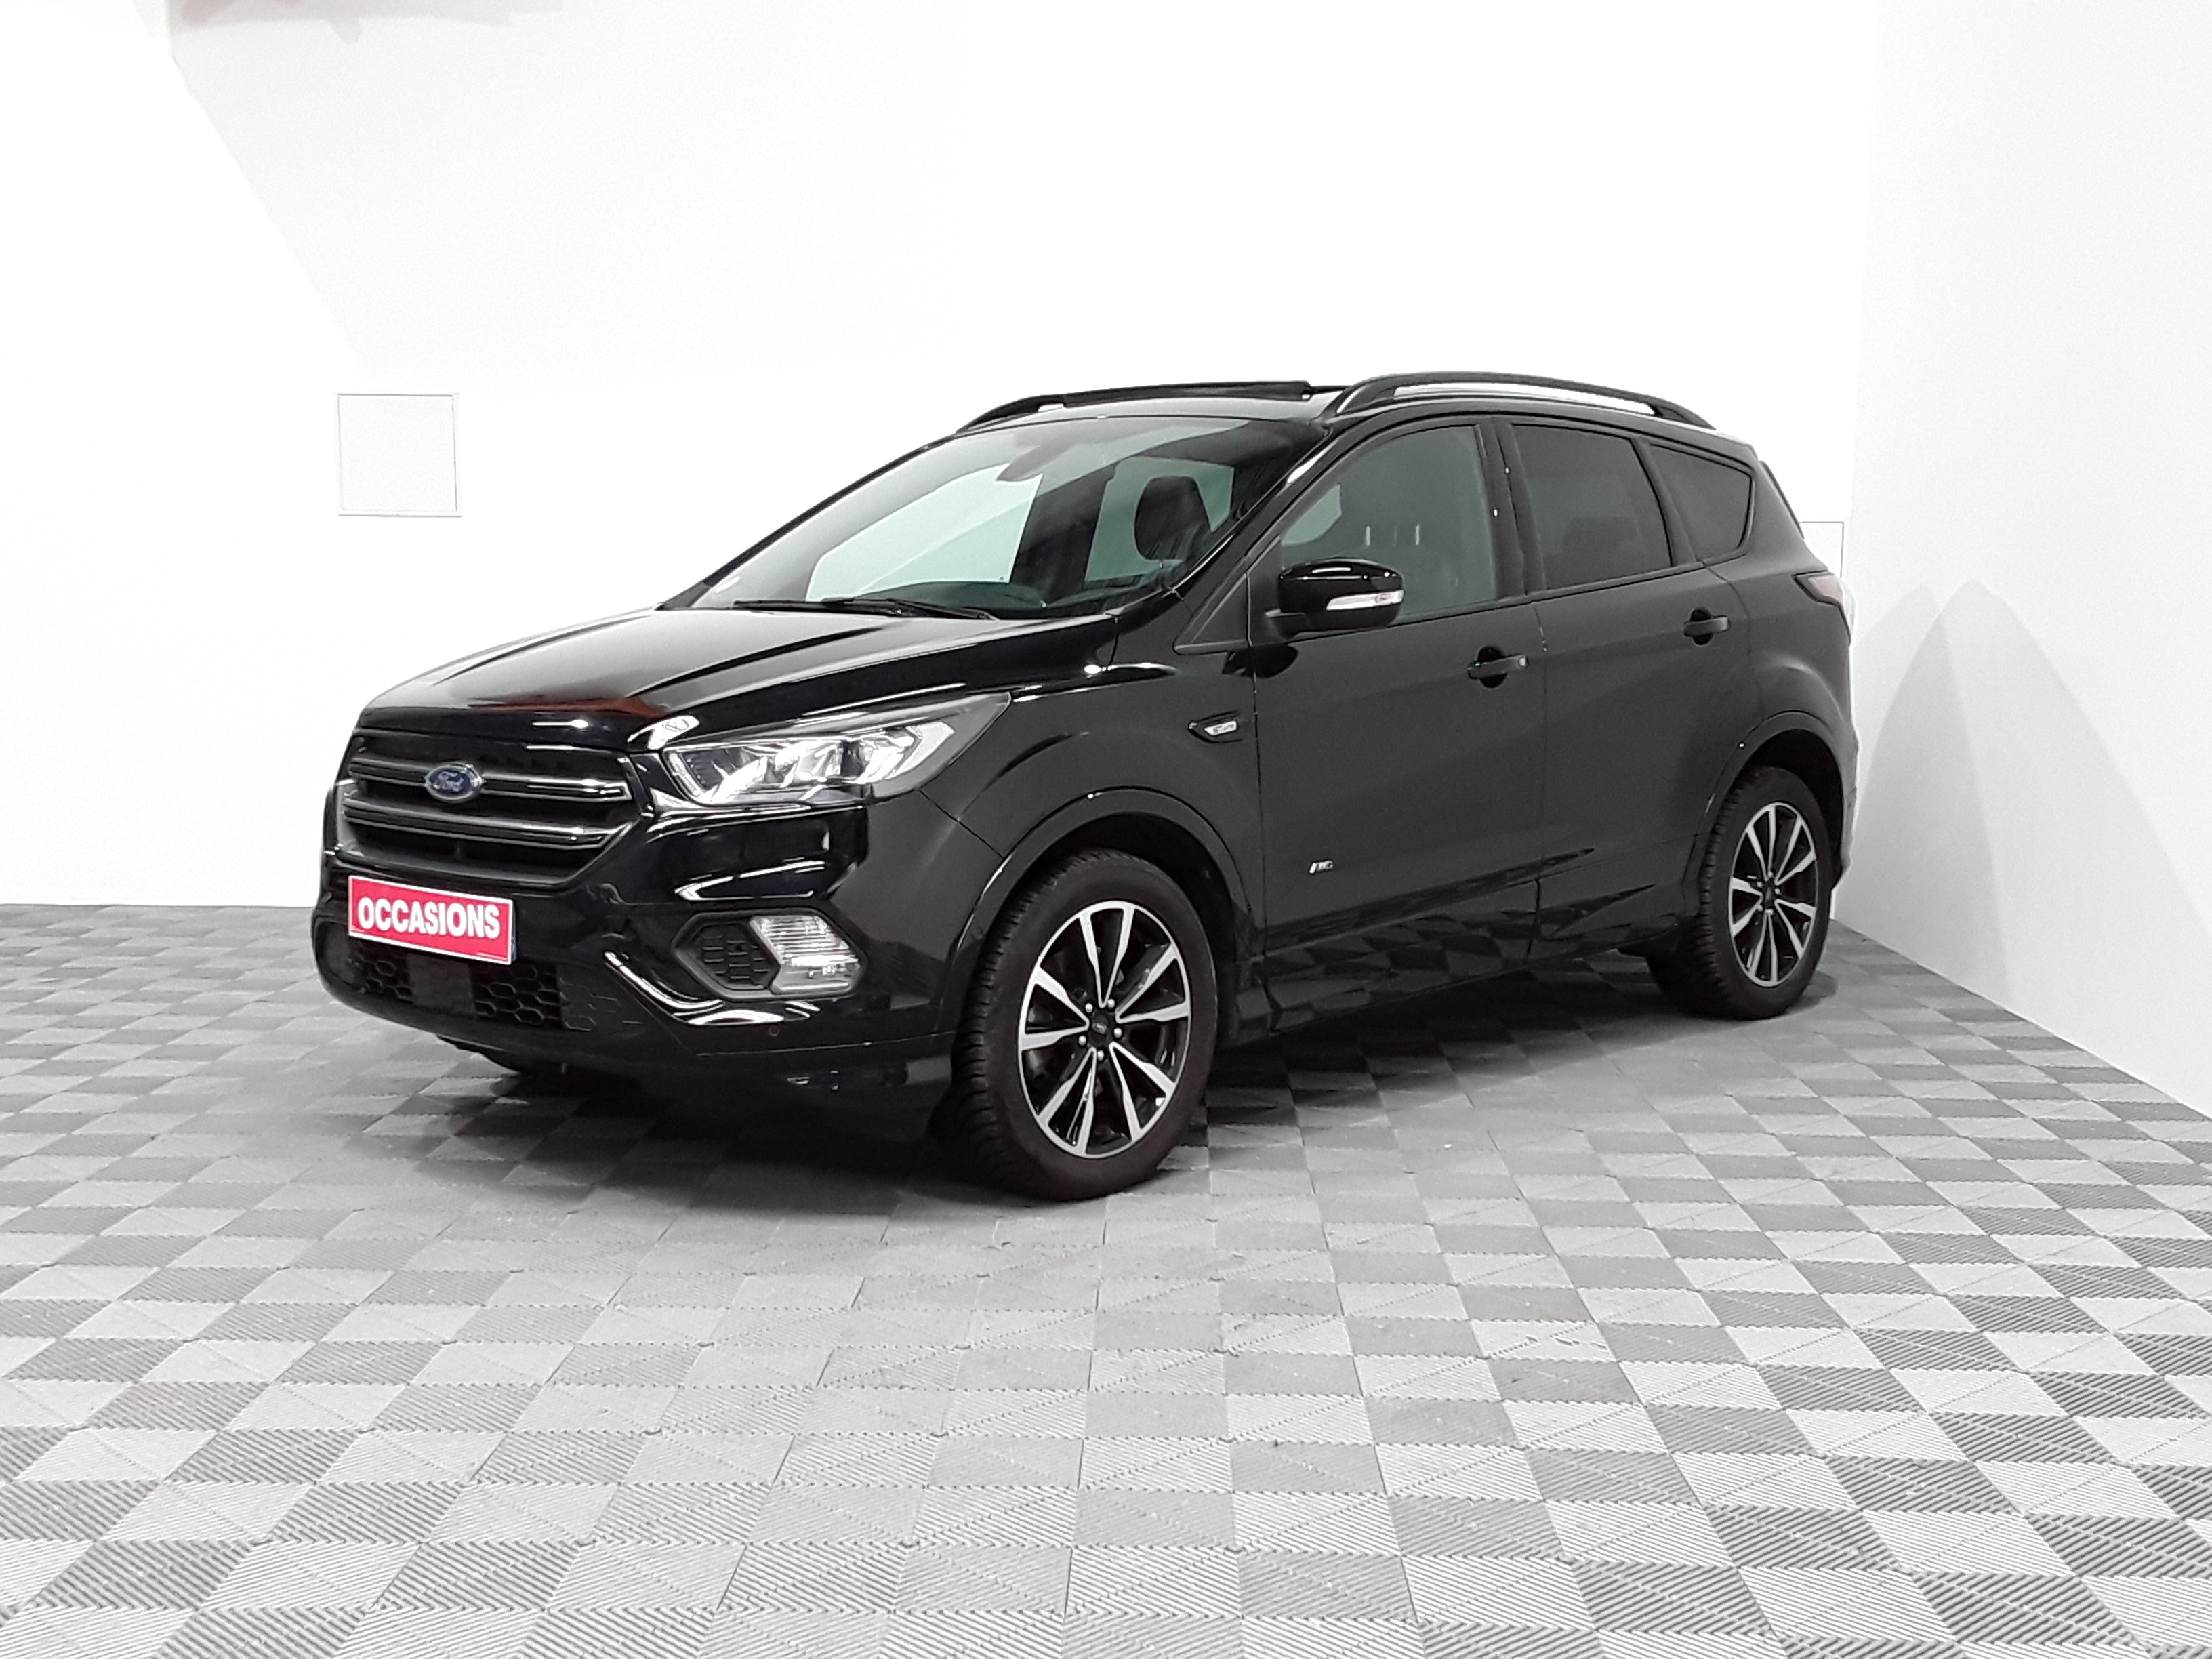 FORD KUGA 2.0 TDCi 180 S&S 4x4 Powershift ST-Line d'occasion